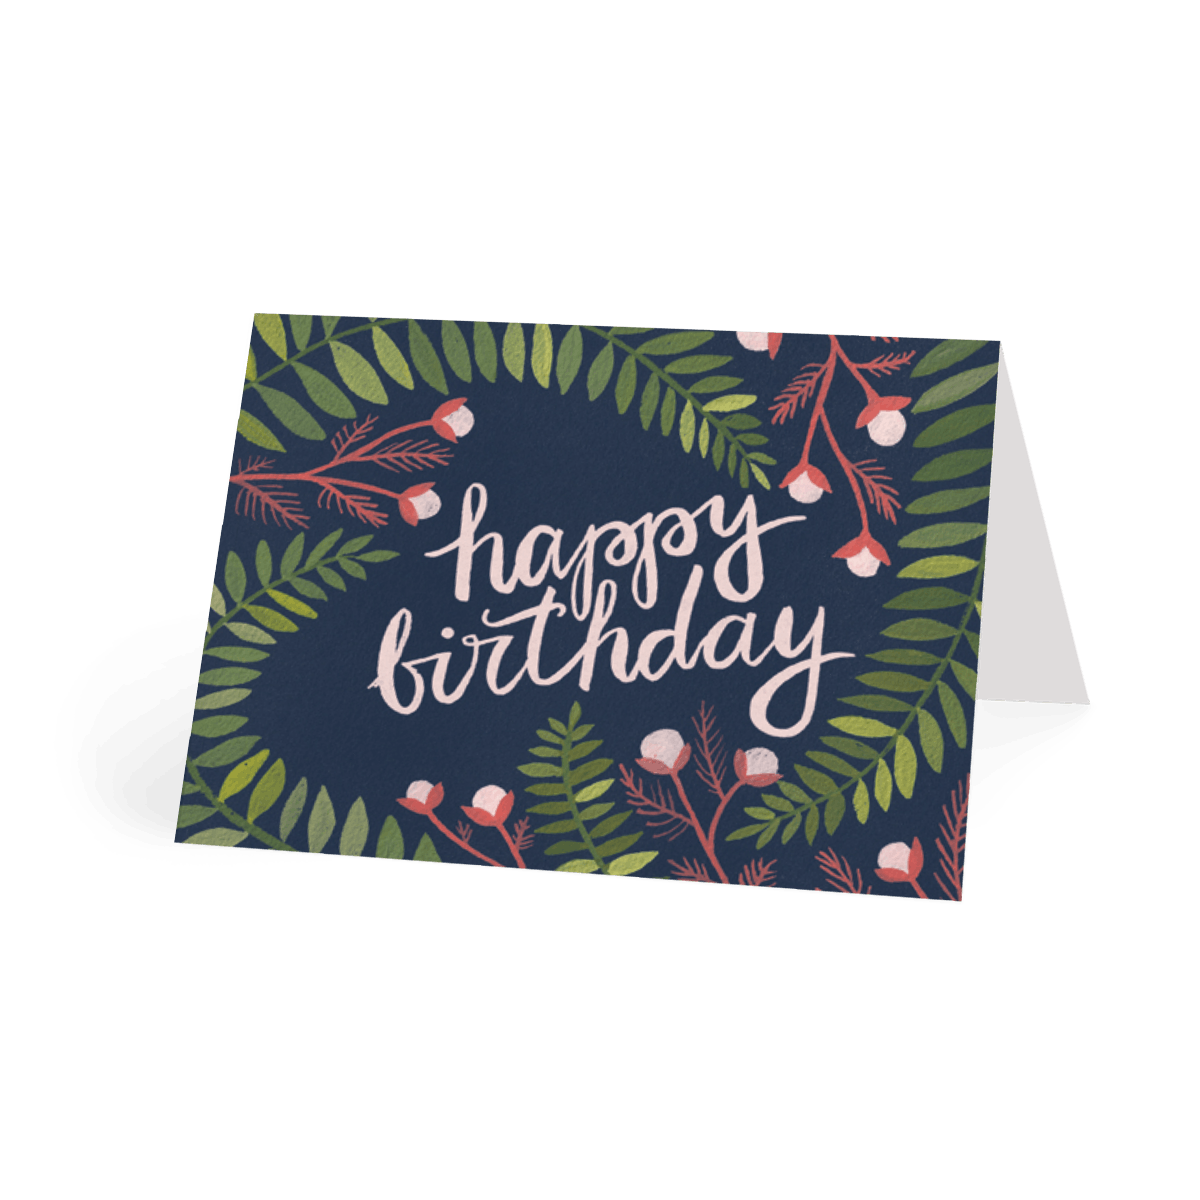 Https%3a%2f%2fwww.papier.com%2fproduct image%2f1418%2f14%2fbirthday ferns 394 front 1453909871.png?ixlib=rb 1.1